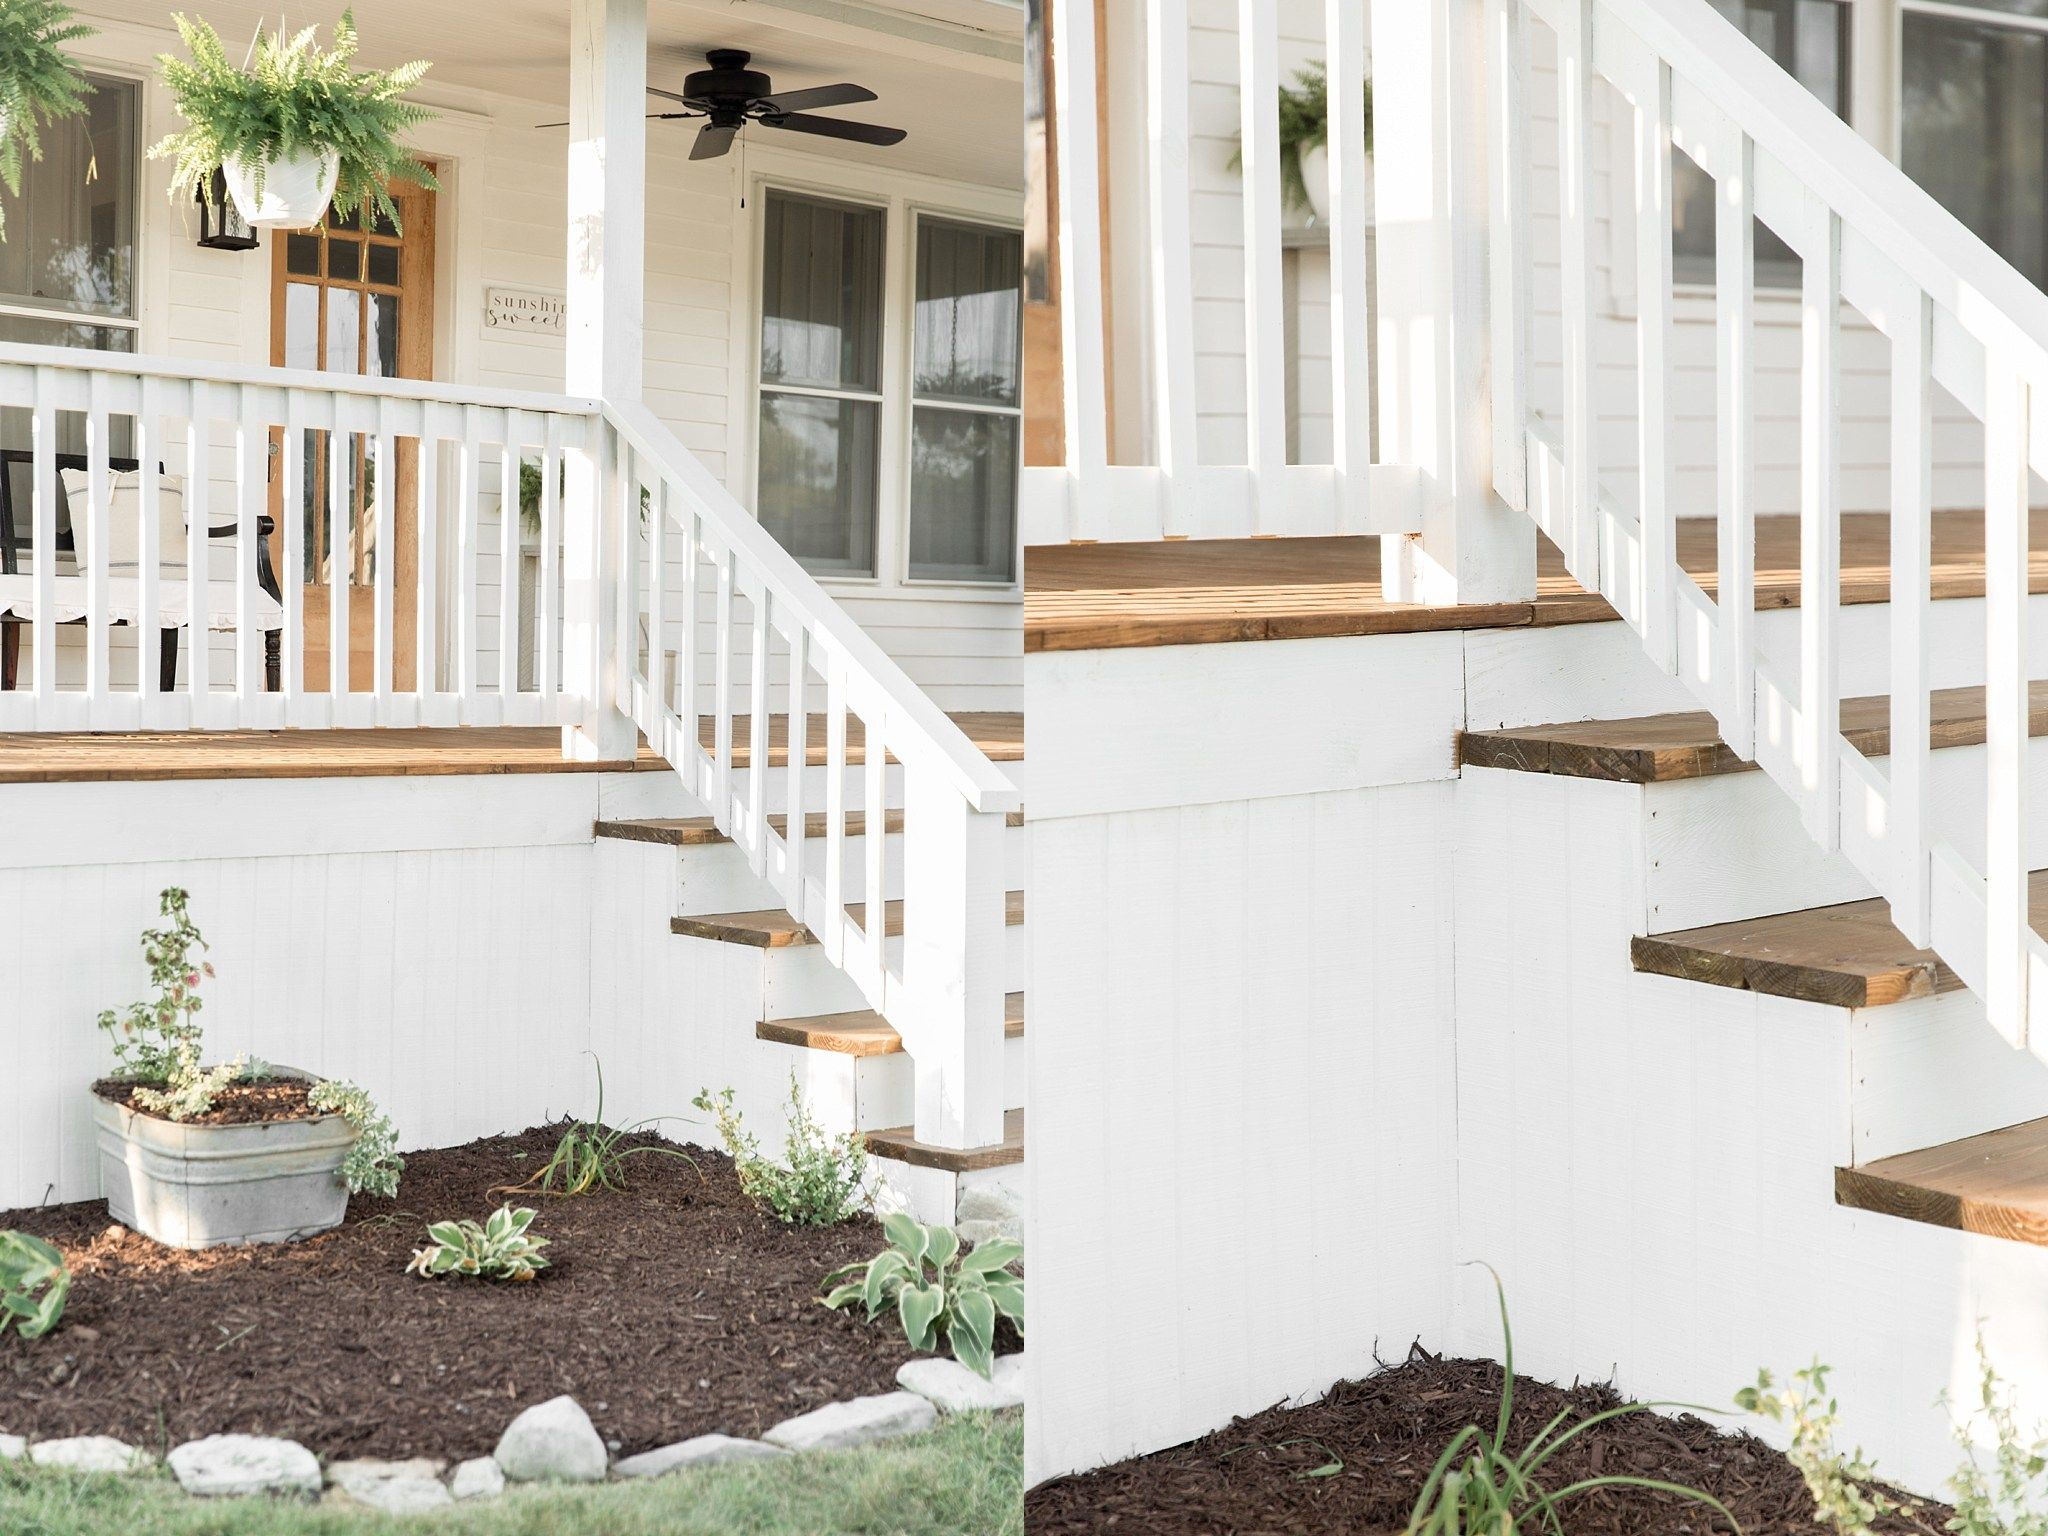 How to cover concrete steps with wood manualidades diy for Escalera de madera al aire libre precio